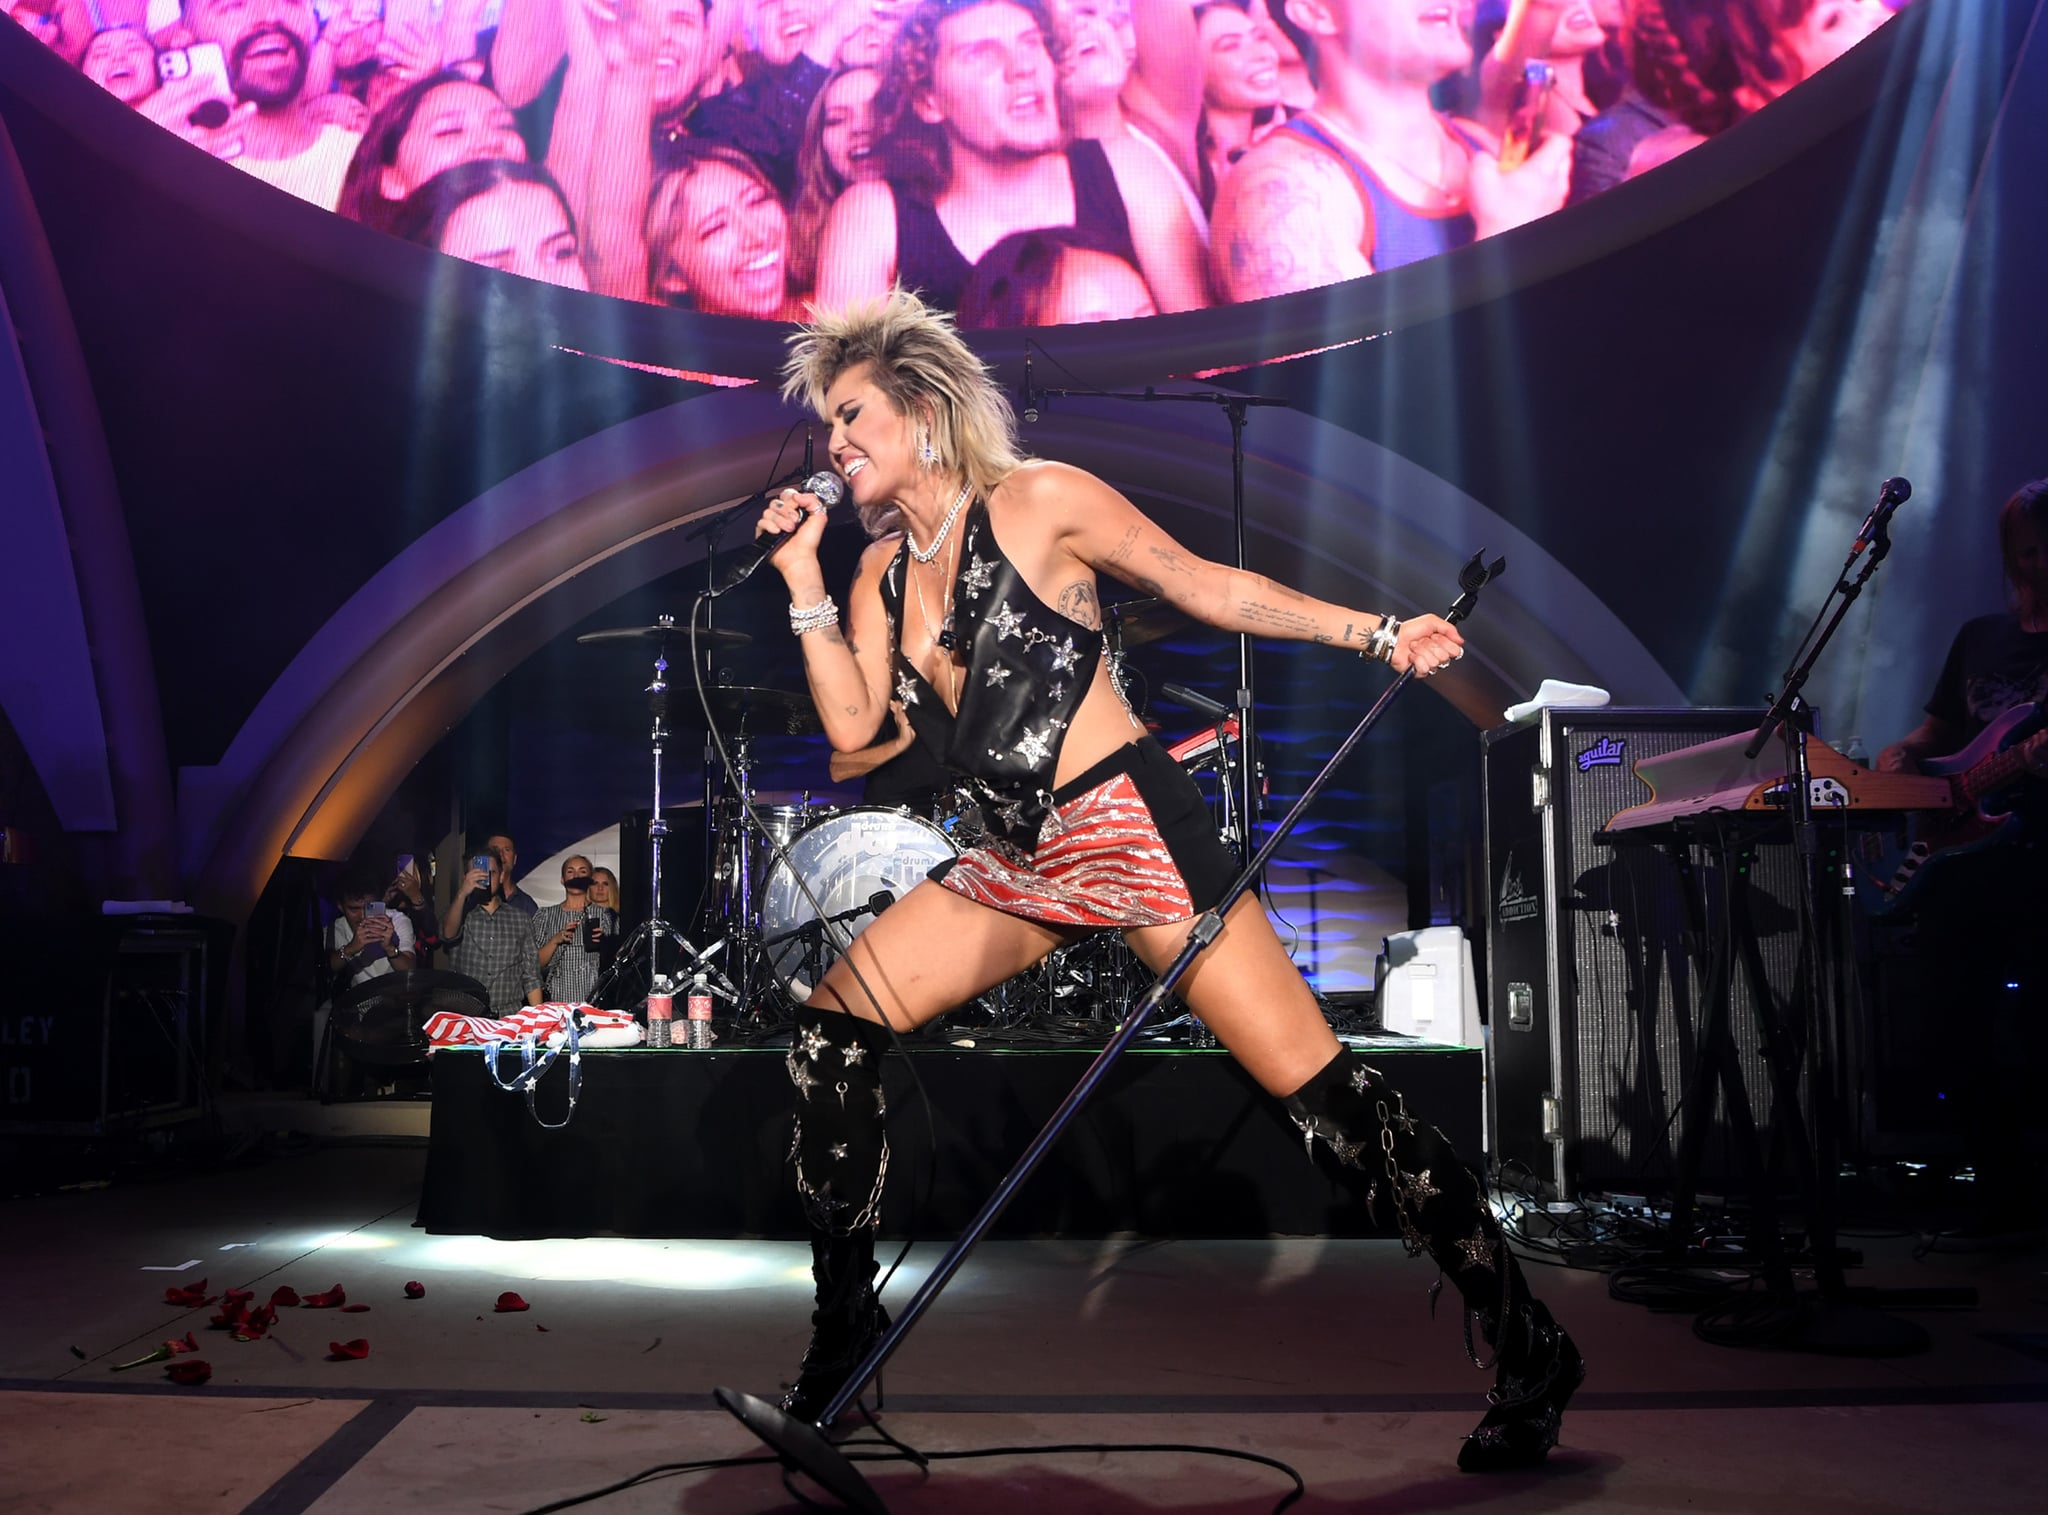 LAS VEGAS, NEVADA - JULY 04: Miley Cyrus headlines the Fourth of July grand opening celebration at Ayu Dayclub at Resorts World Las Vegas on July 04, 2021 in Las Vegas, Nevada. (Photo by Denise Truscello/Getty Images for Resorts World Las Vegas)